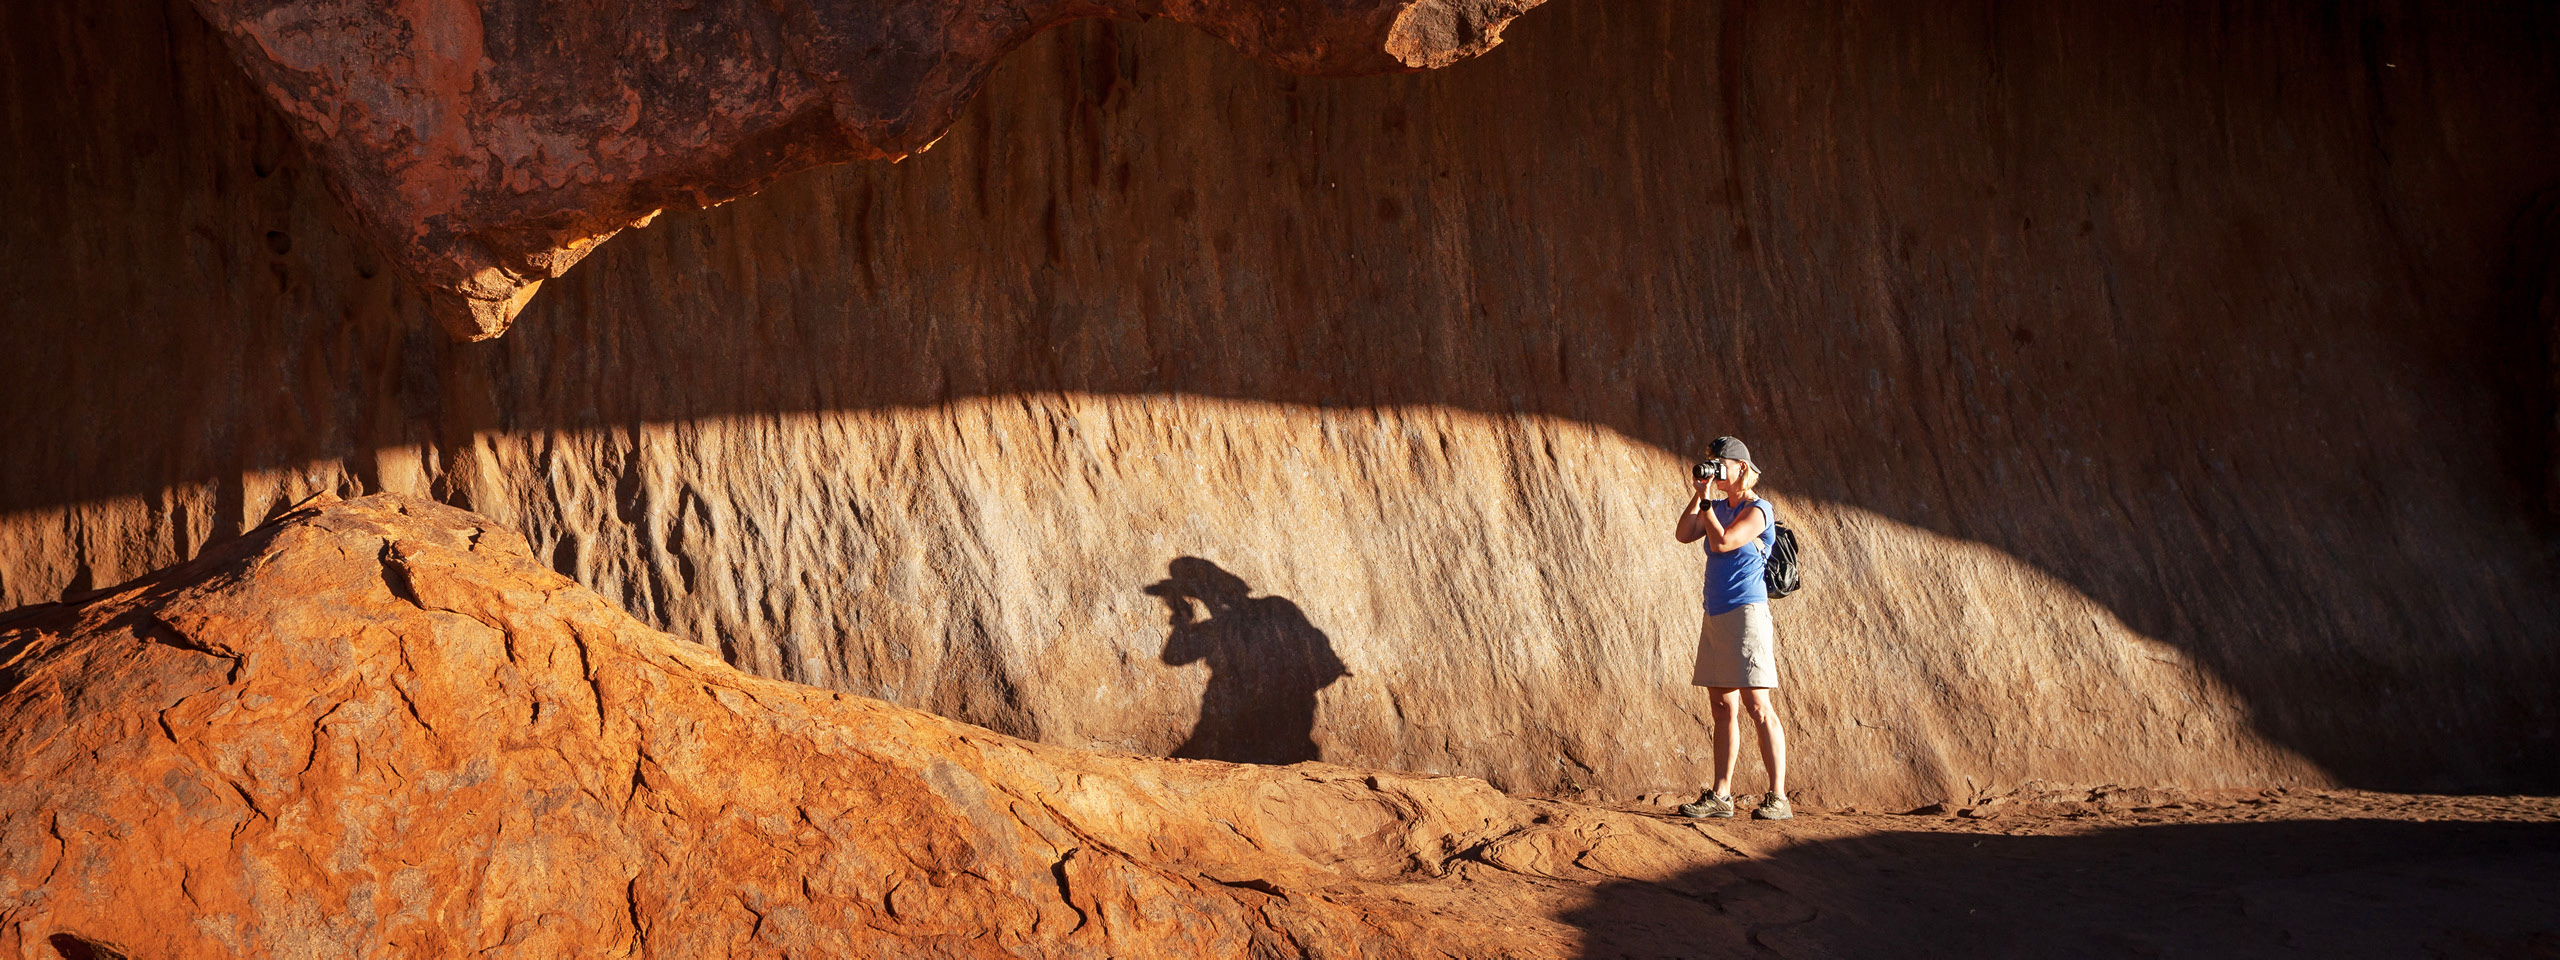 Kitchen Cave at Uluru